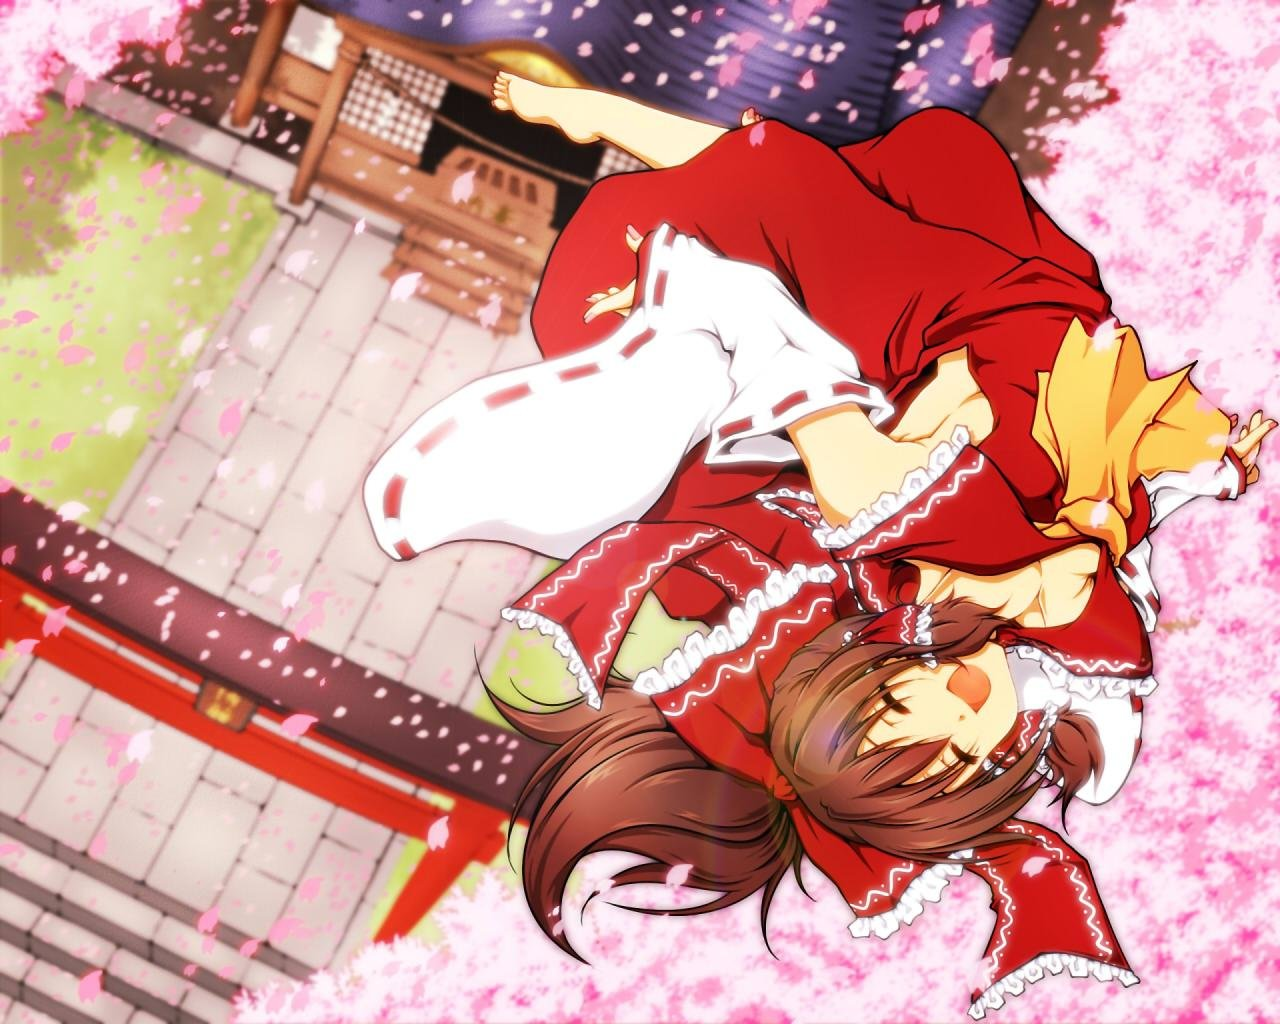 Download hd 1280x1024 Reimu Hakurei PC background ID:225542 for free